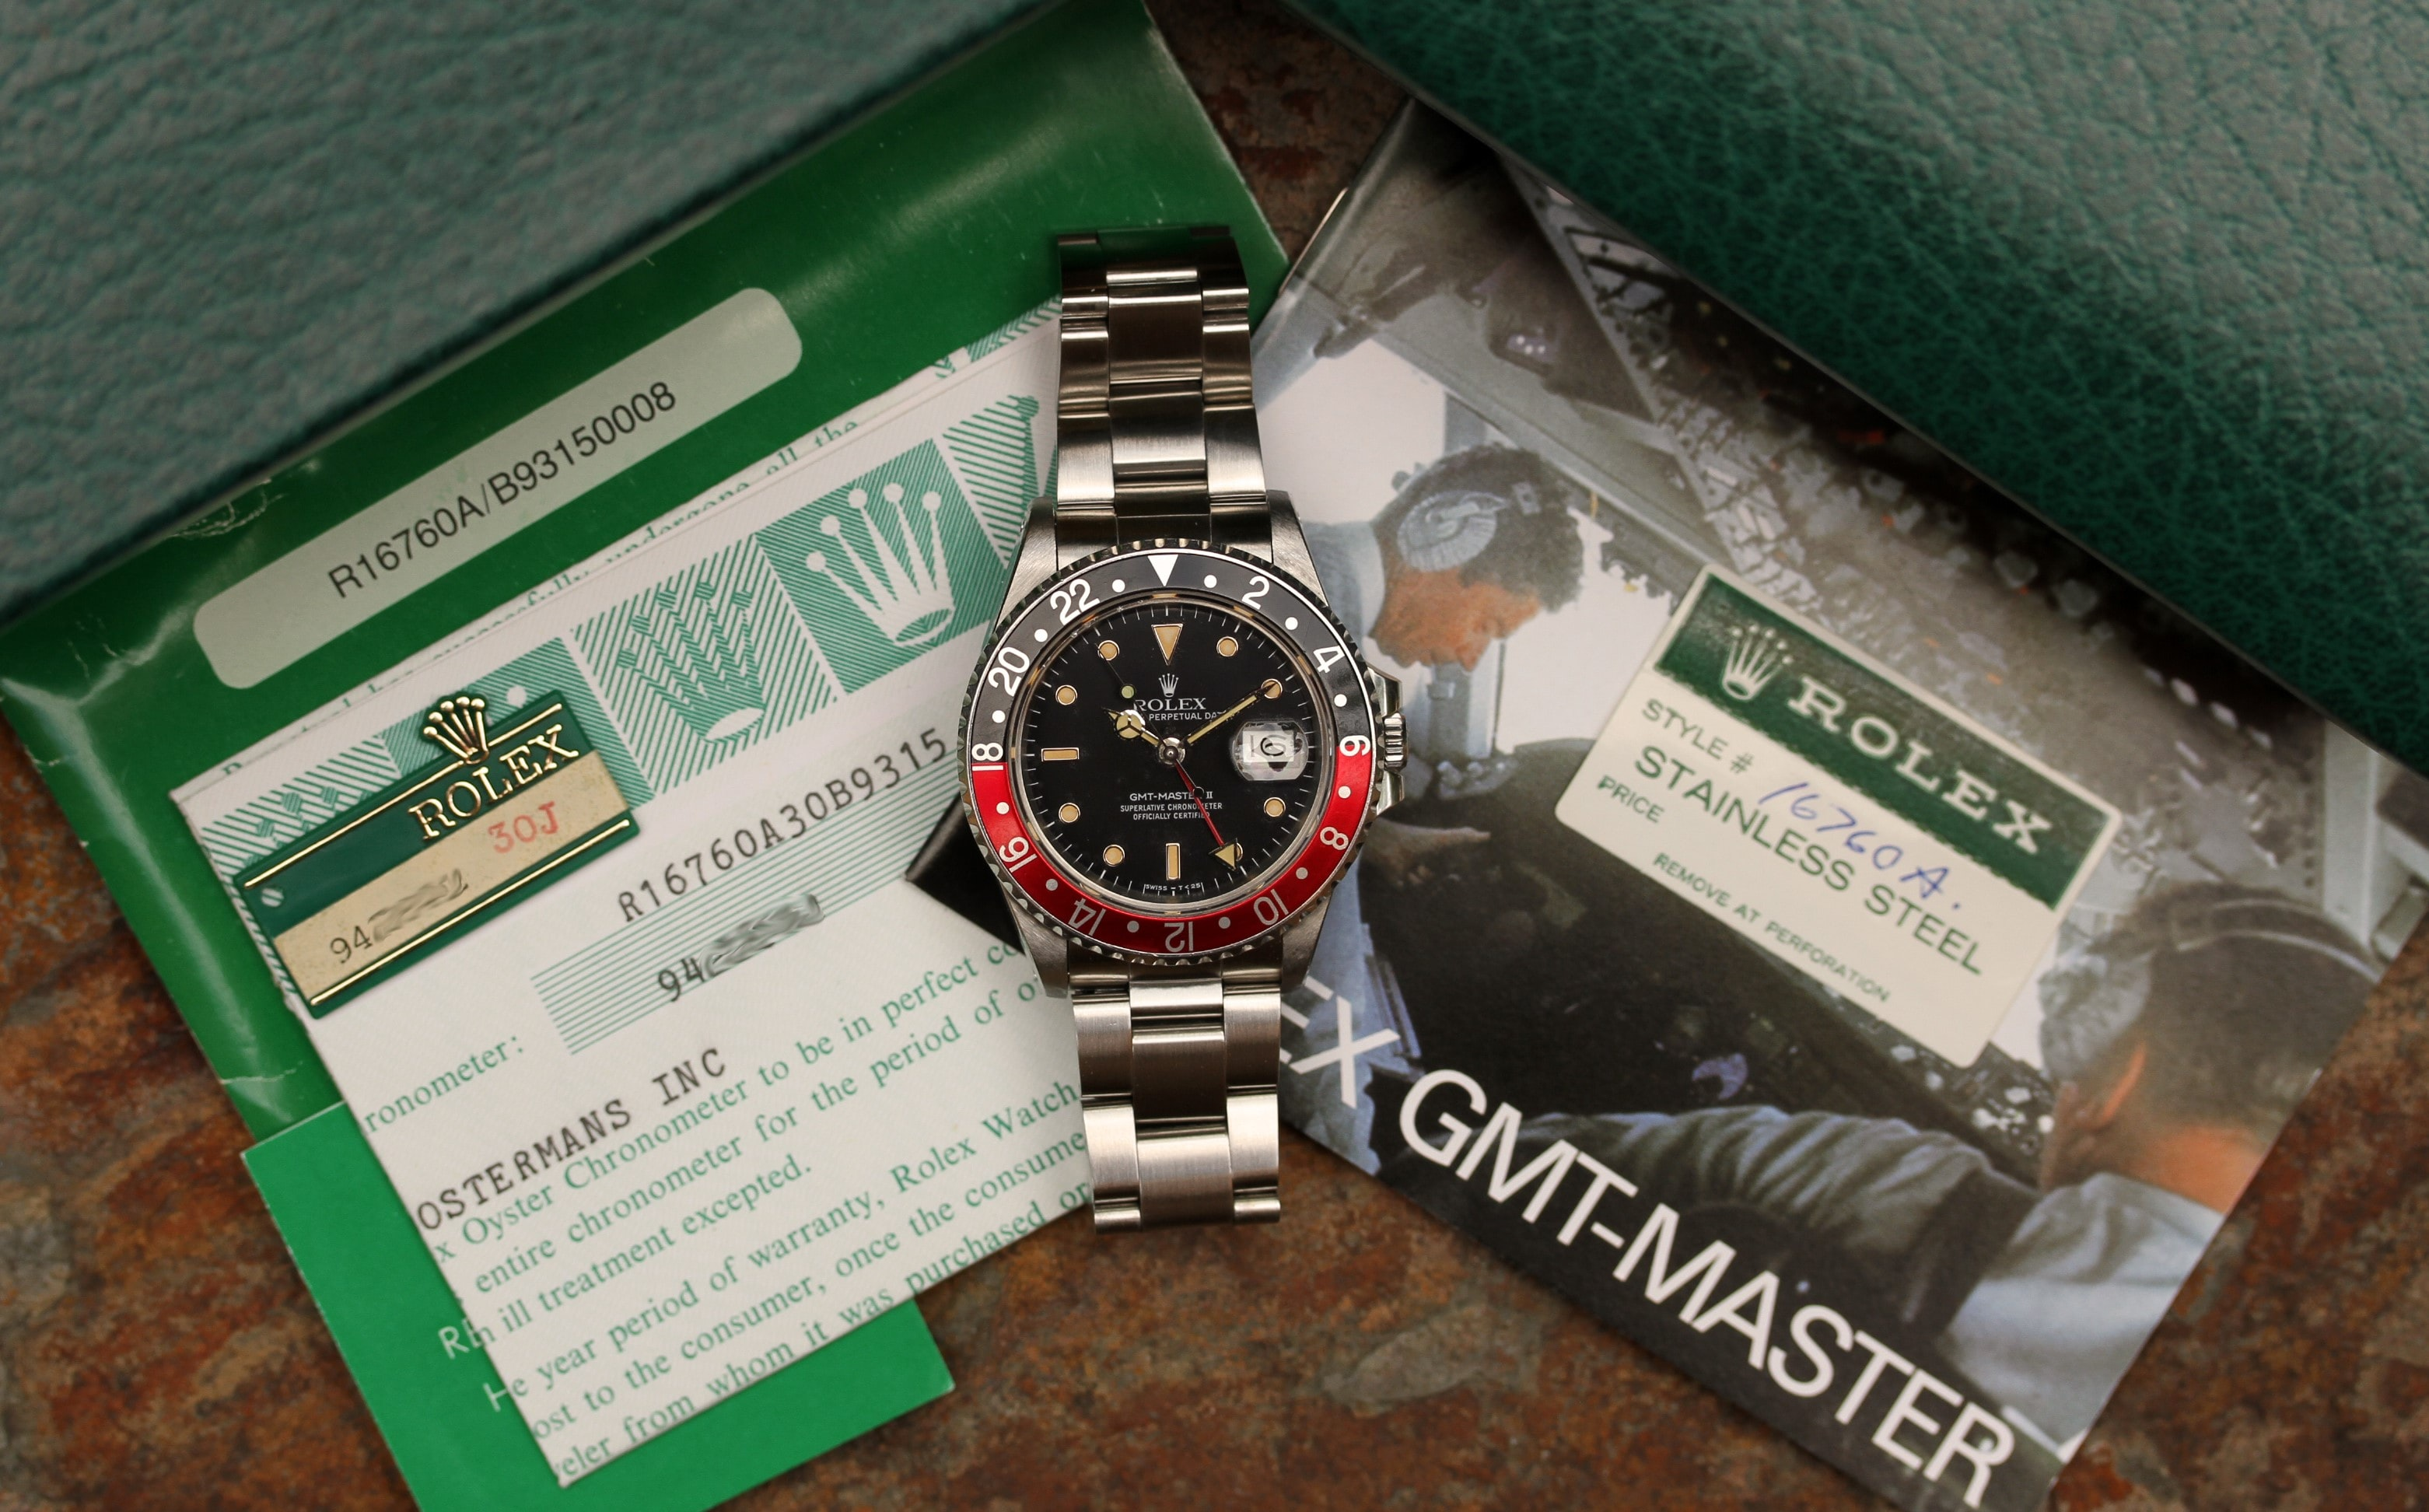 Img 7625.jpg?ixlib=rails 1.1 Bring a Loupe: A Full Set Rolex GMT-Master II Ref. 16760, An IWC Ingenieur Ref. 866, A Square Vacheron Constantin 222, And More Bring a Loupe: A Full Set Rolex GMT-Master II Ref. 16760, An IWC Ingenieur Ref. 866, A Square Vacheron Constantin 222, And More IMG 7625